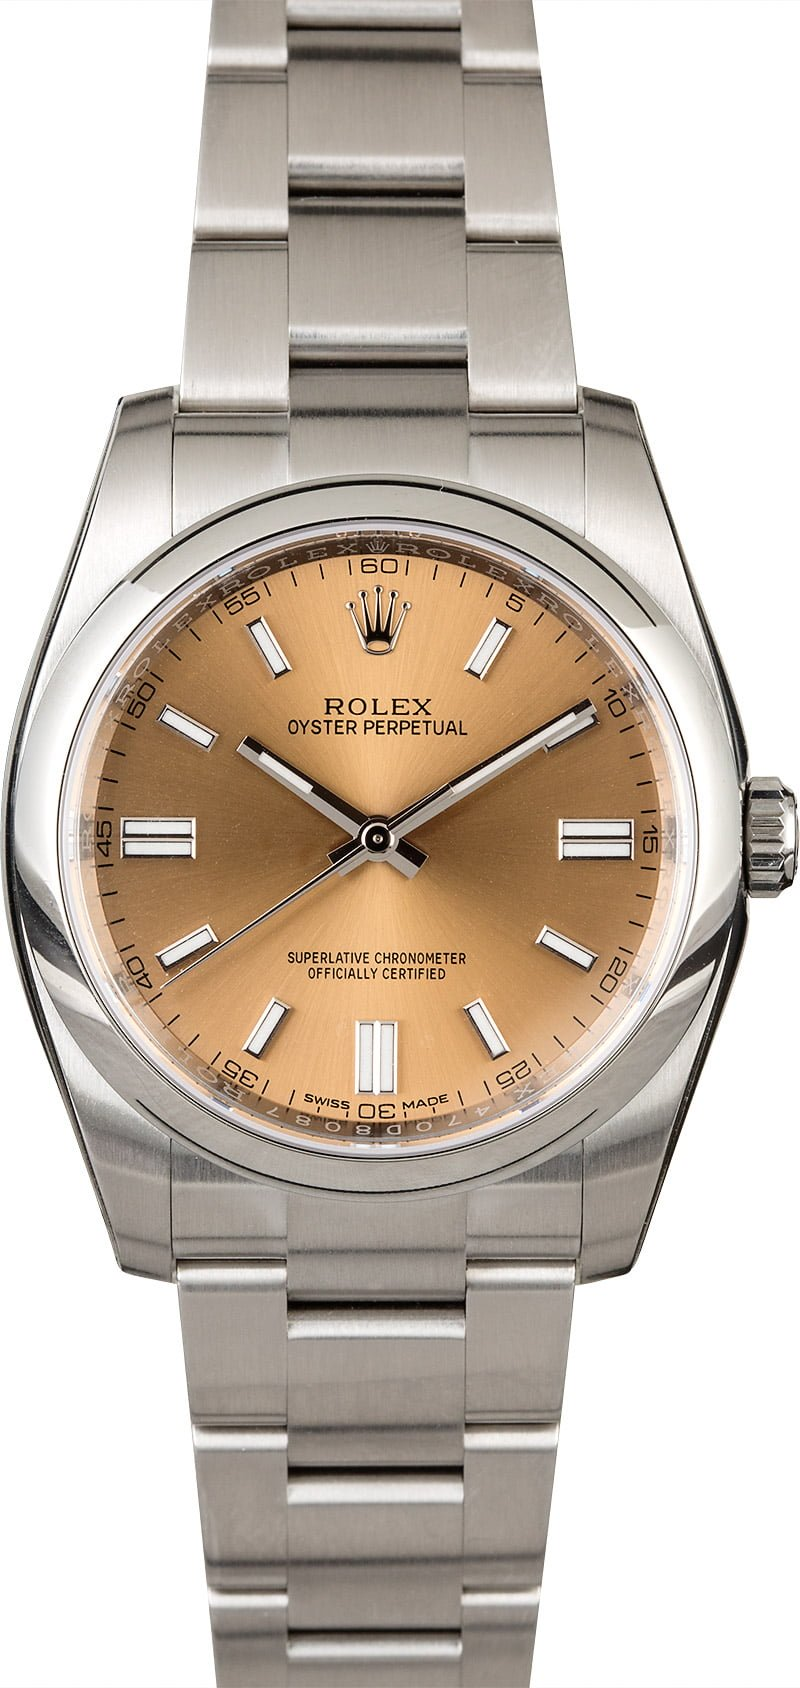 Luxury Watches Between $1K and $5K Buying Guide Rolex Oyster Perpetual 36 White Grape Dial